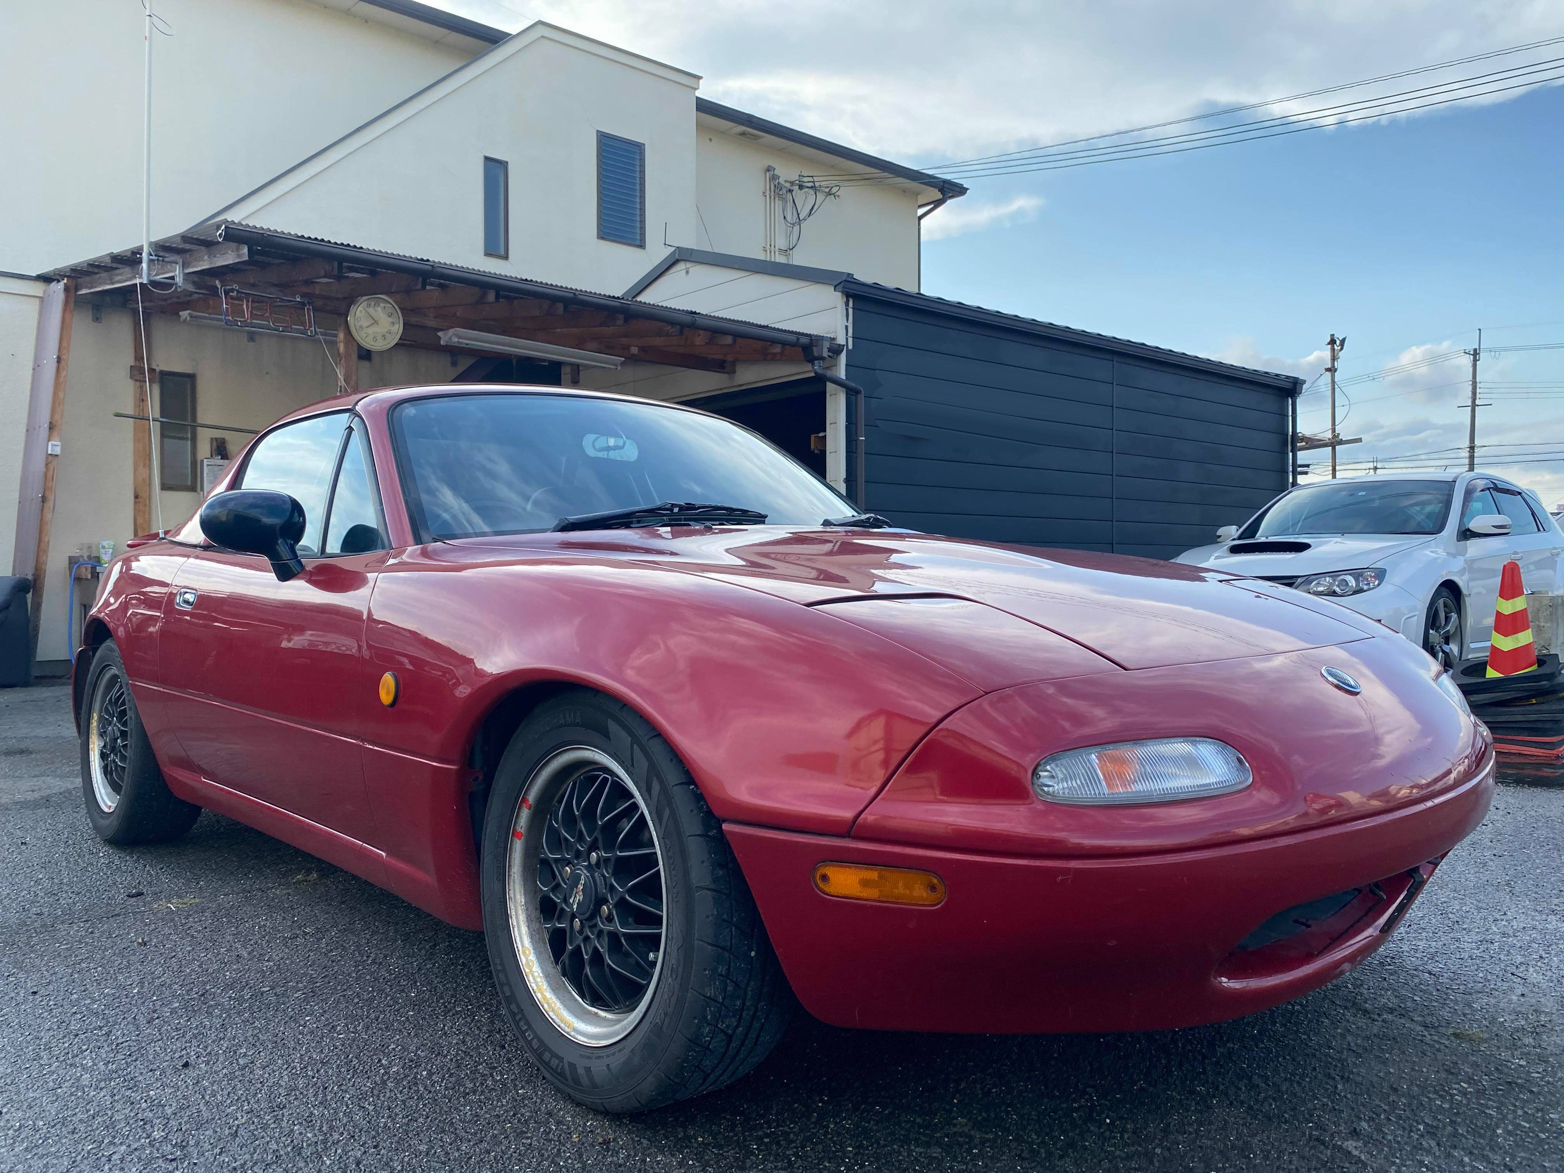 1992 Mazda Eunos Roadster TURBO - $13,950 HARD TOP NOT INCLUDED